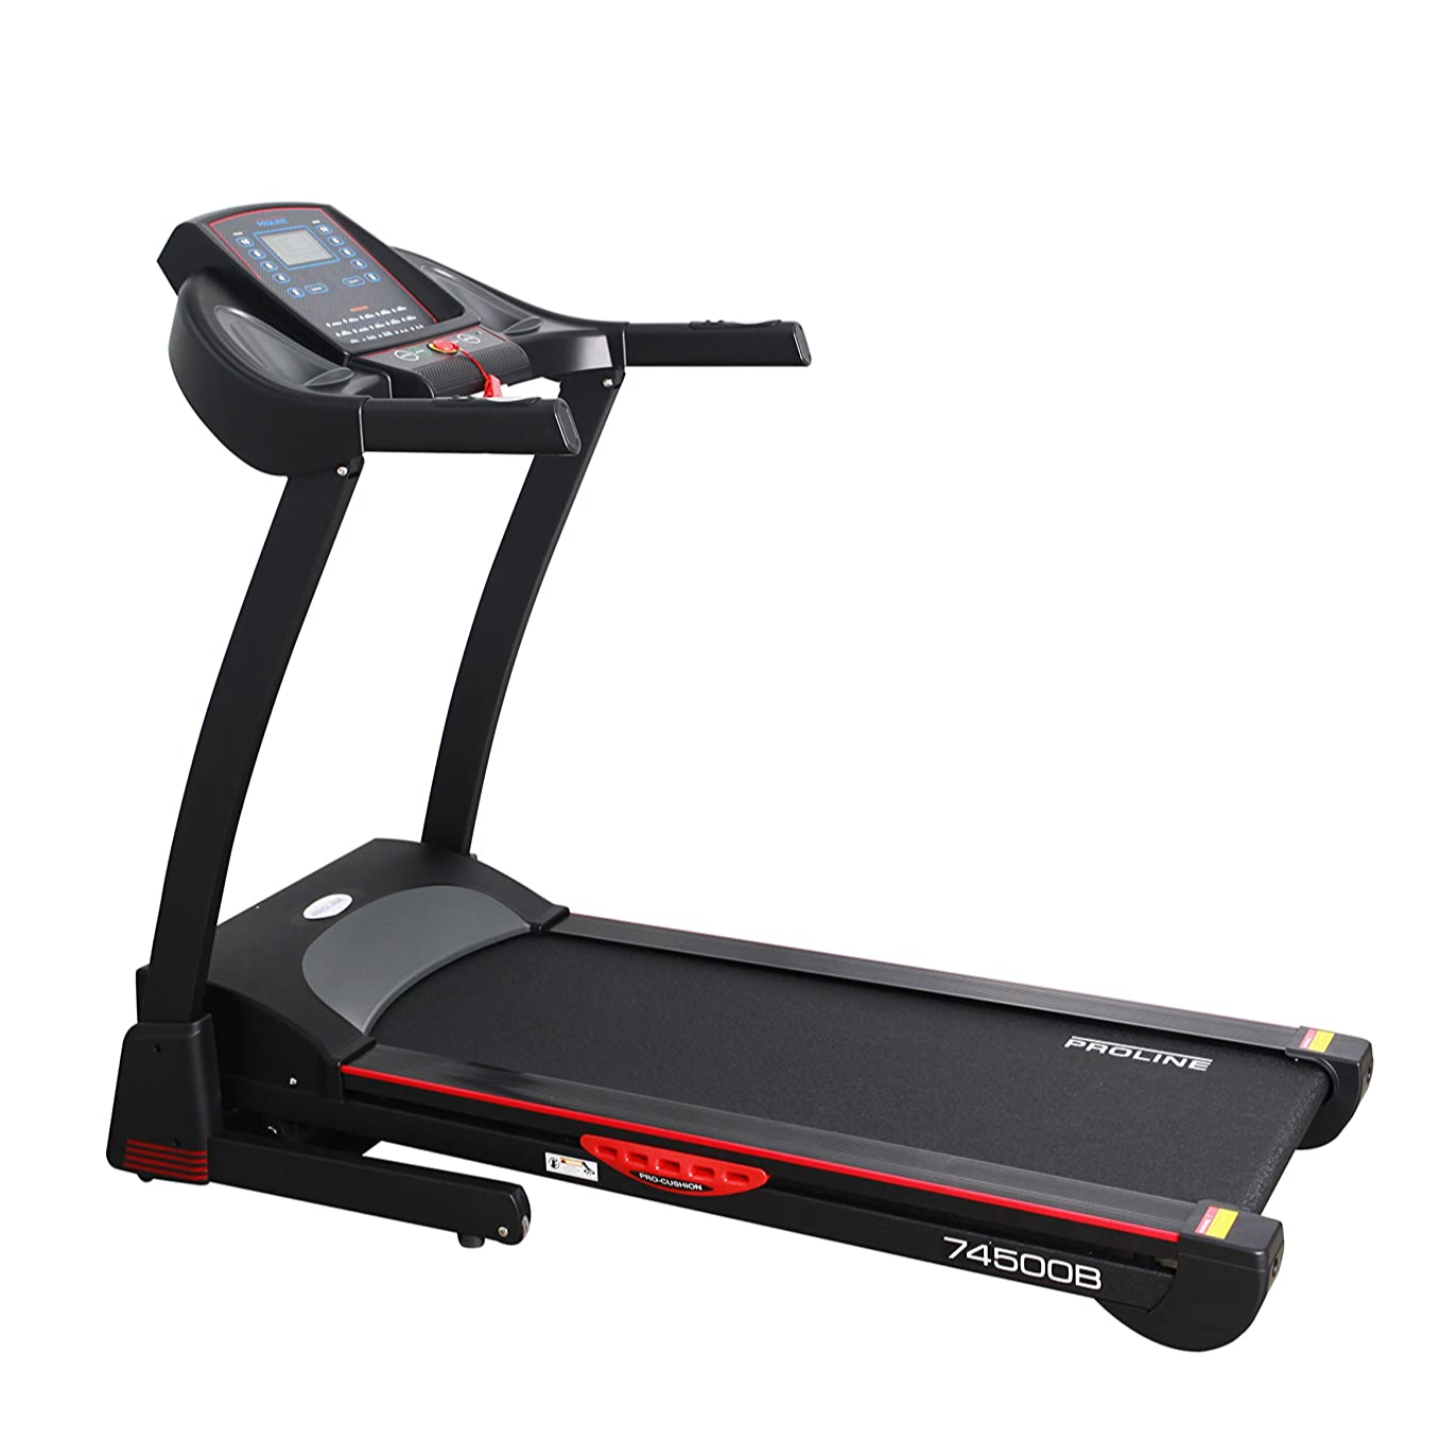 PROLINE 74500B TREADMILL